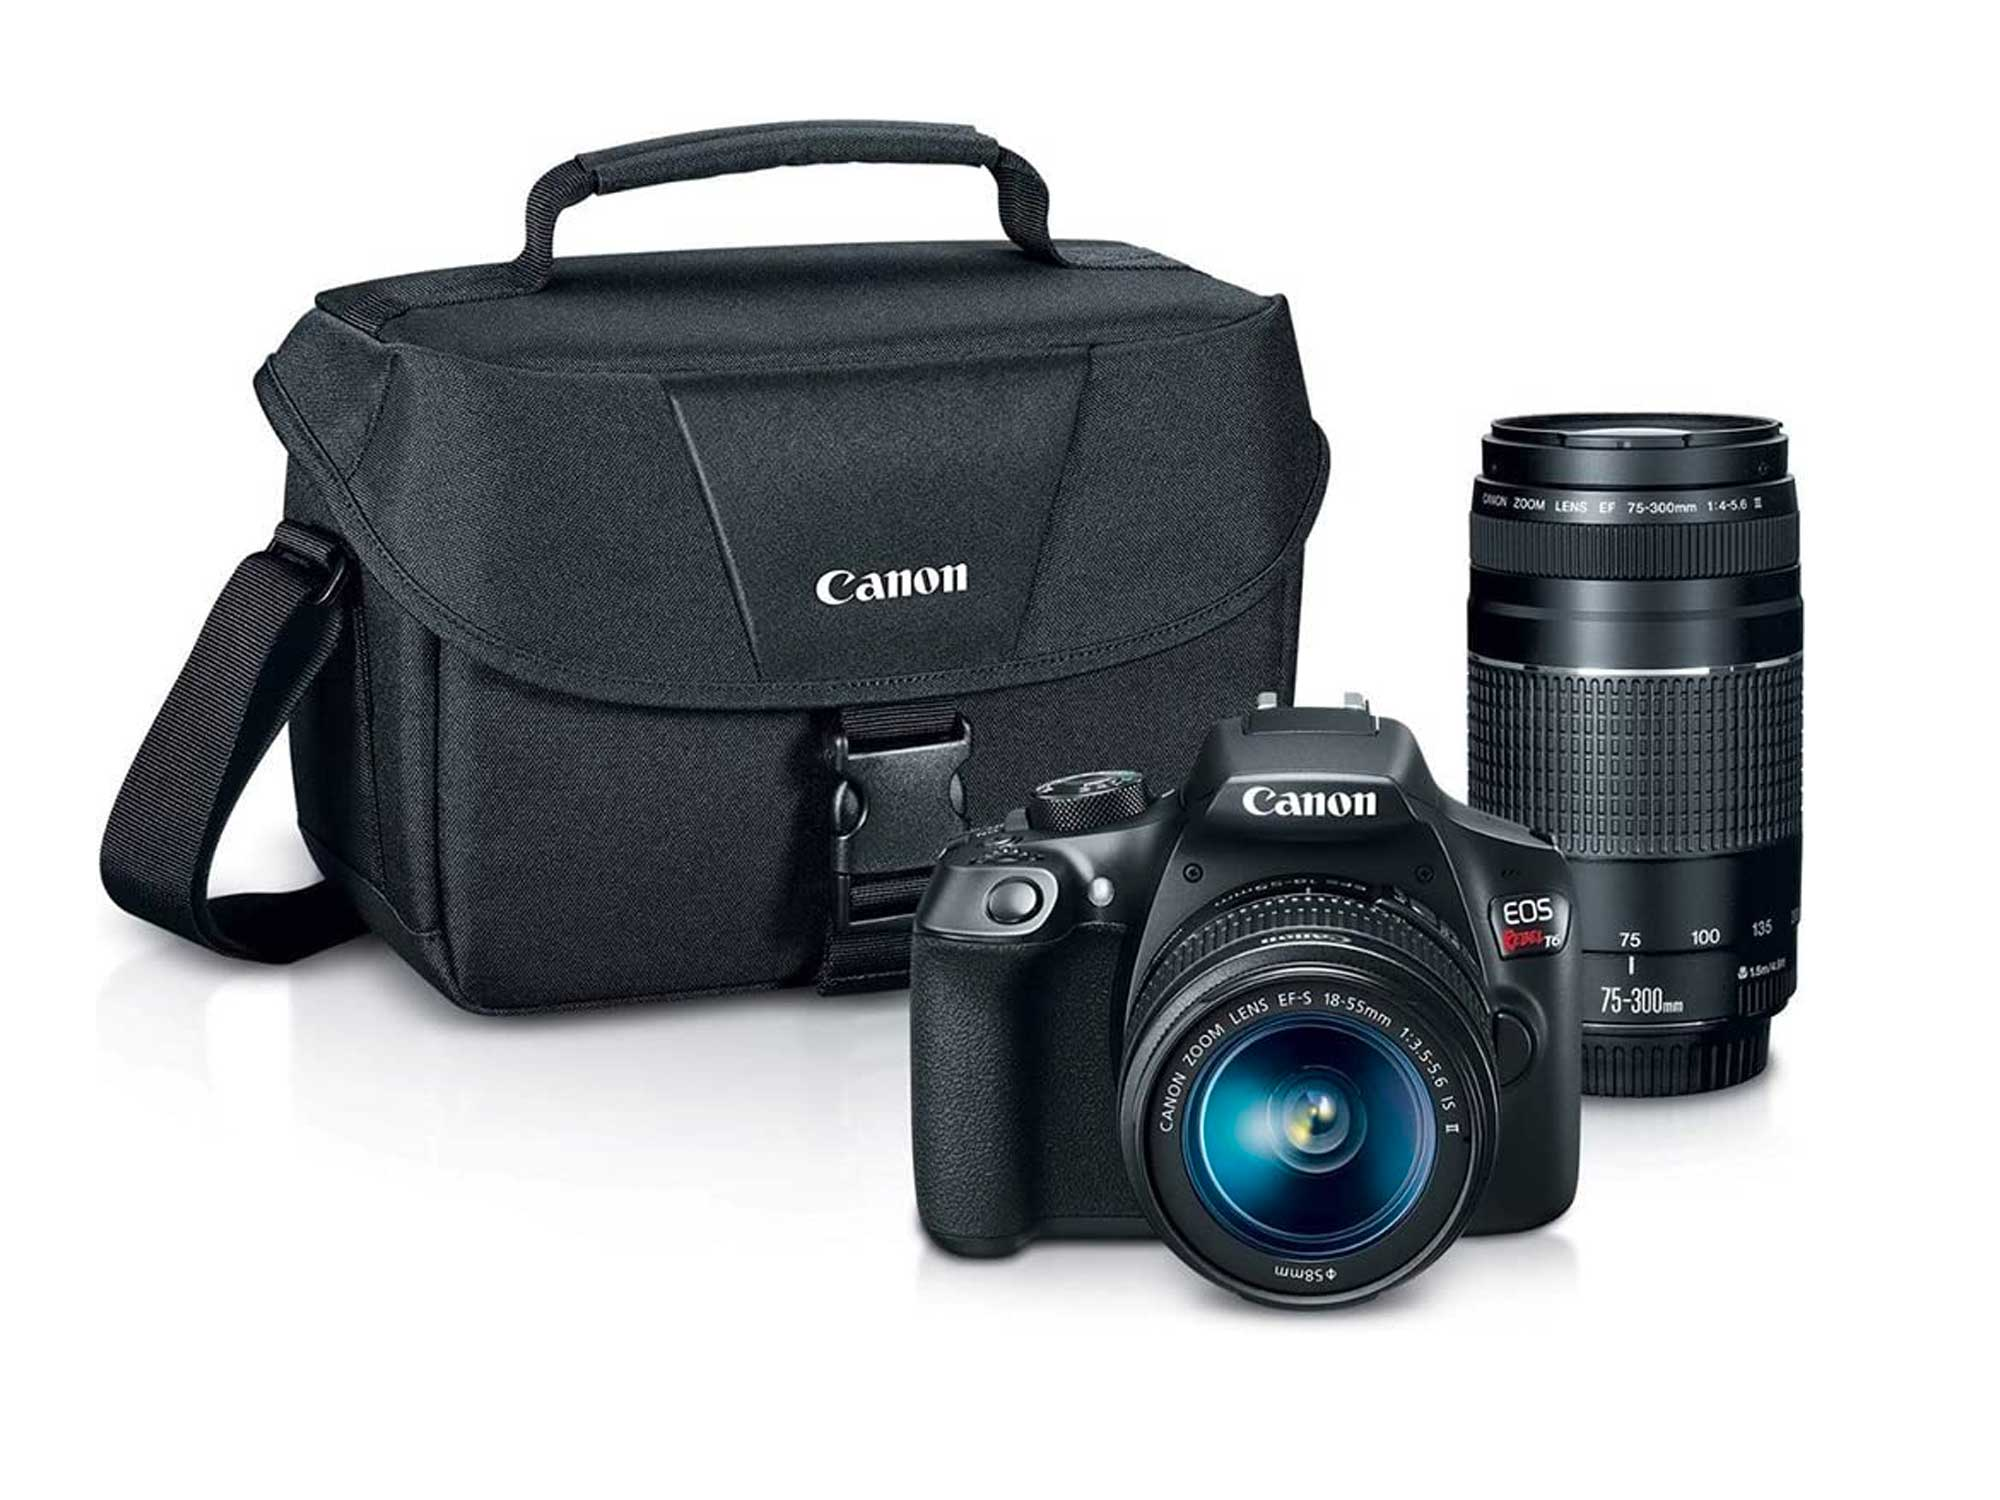 Canon Digital SLR Camera Kit [EOS Rebel T6] with EF-S 18-55mm and EF 75-300mm Zoom Lenses